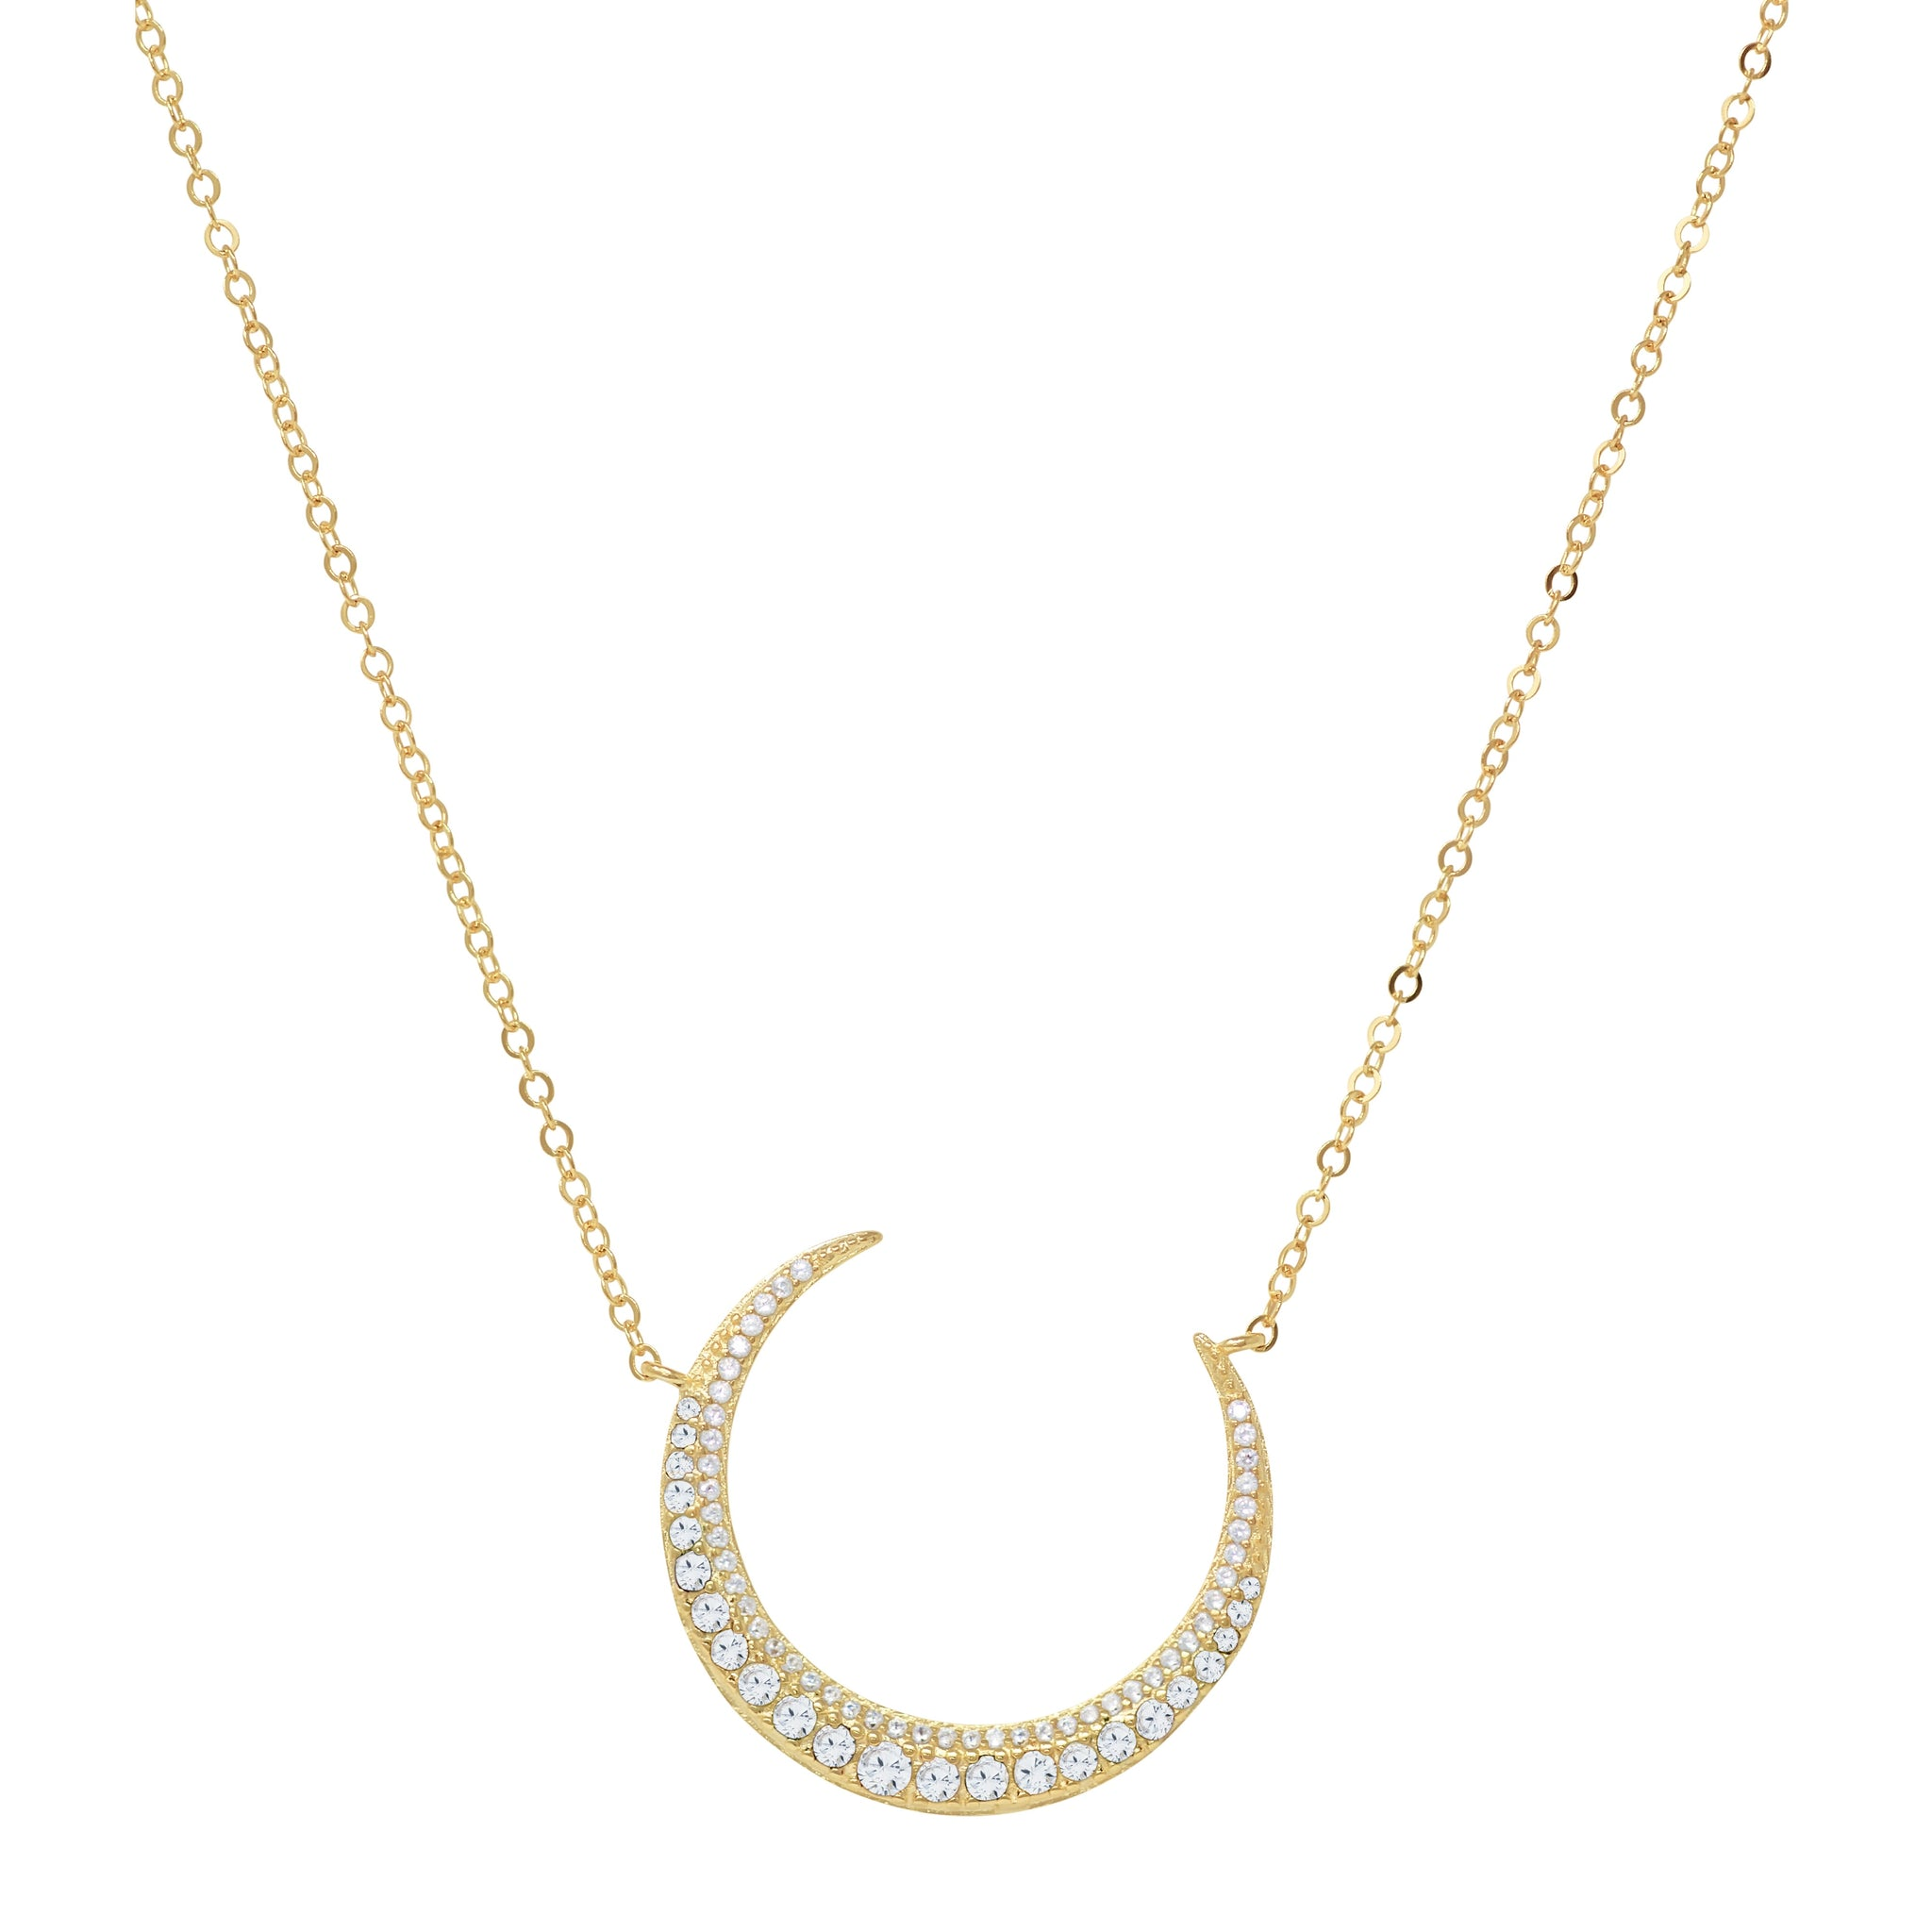 Crescent Moon Necklace - Yellow Gold - Voare